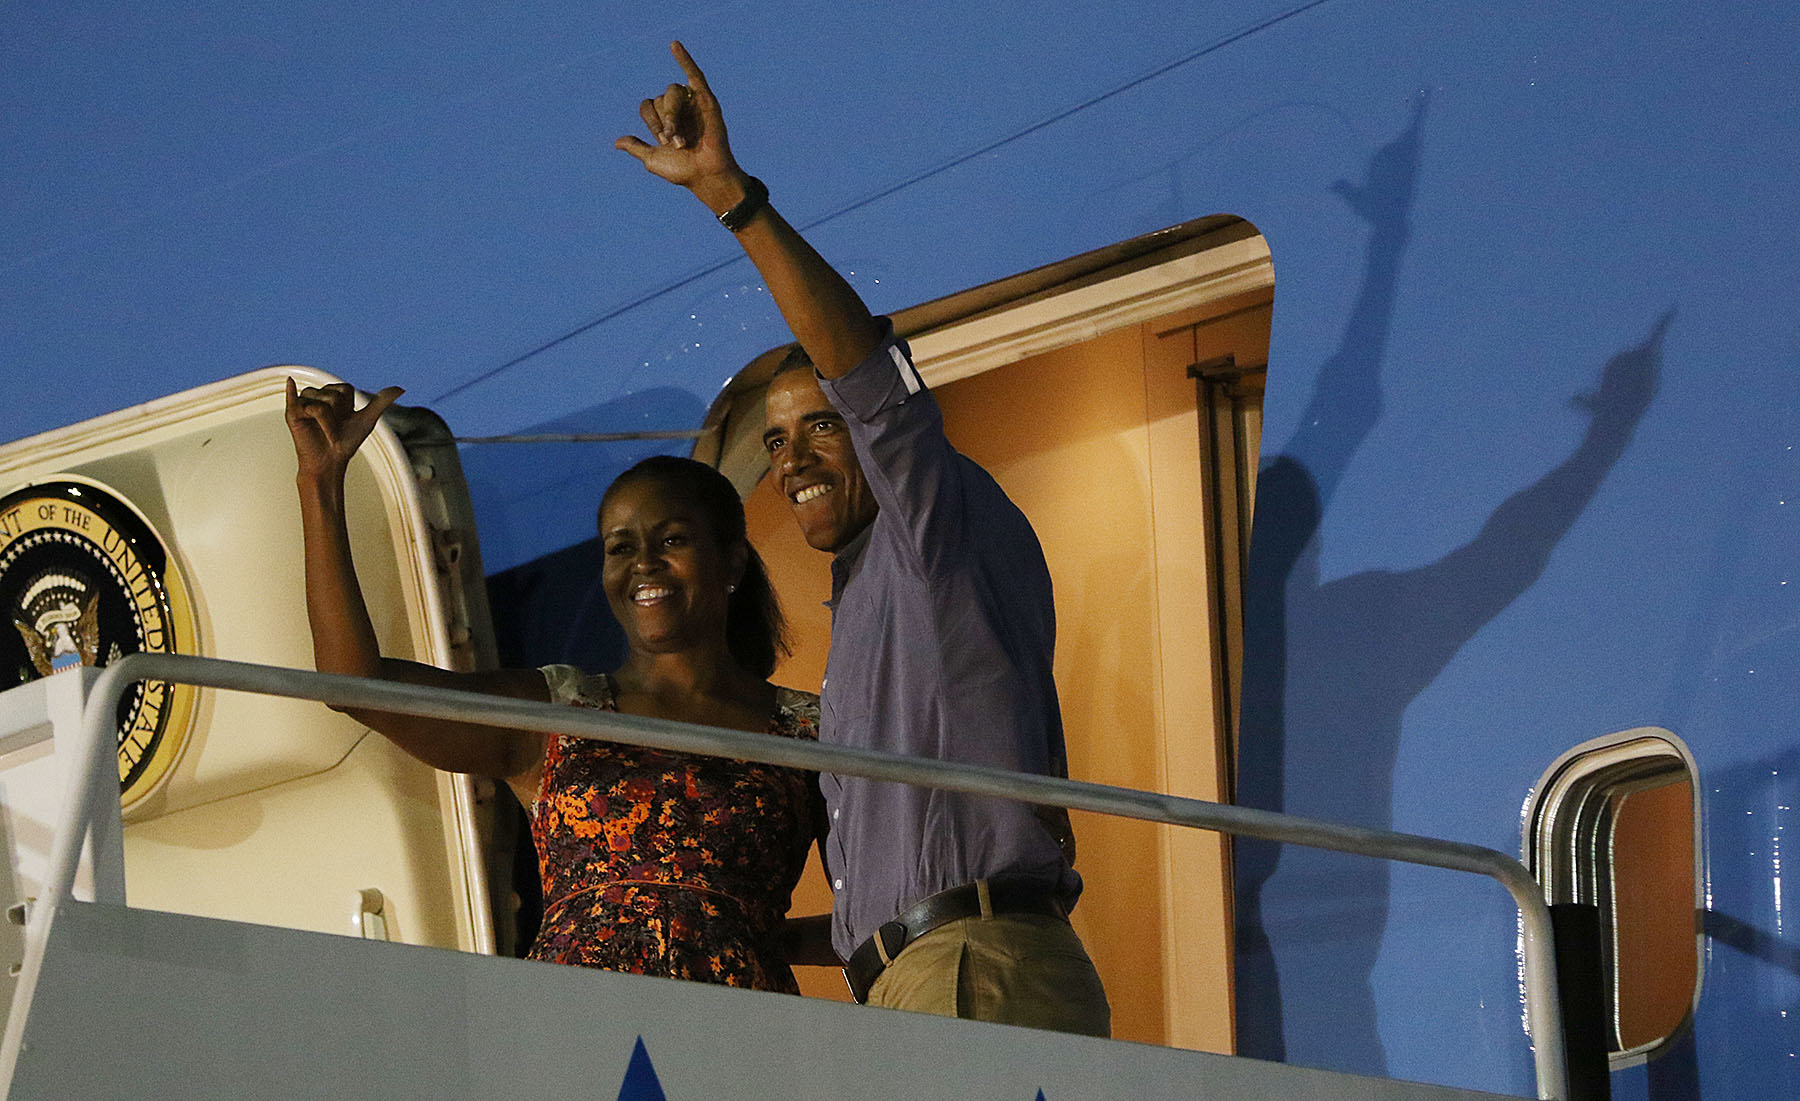 <p>Continuing an Oahu tradition, the year begins with an ending as President Barack Obama and First Lady Michelle Obama flash shakas before boarding Air Force One in early January, closing the books on another Hawaiian holiday vacation.</p>